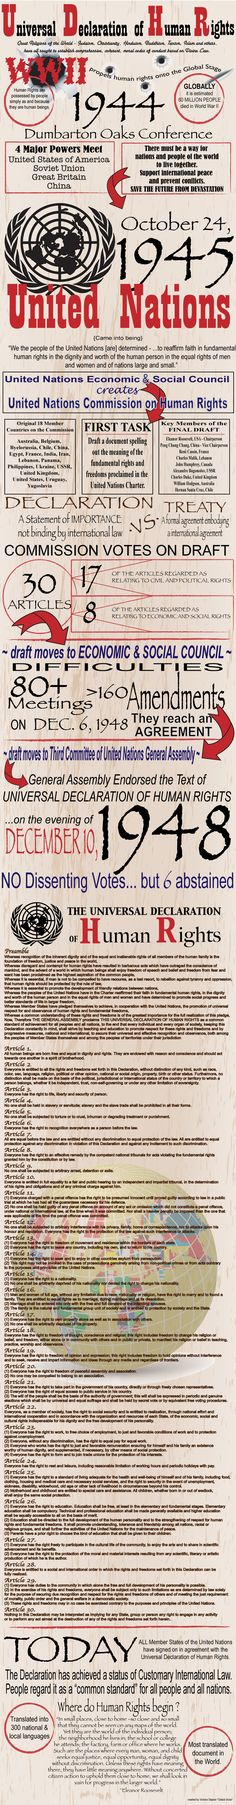 Universal Declaration of Human Rights Infograph. Must be one of biggest achievements of all if it can be achieved